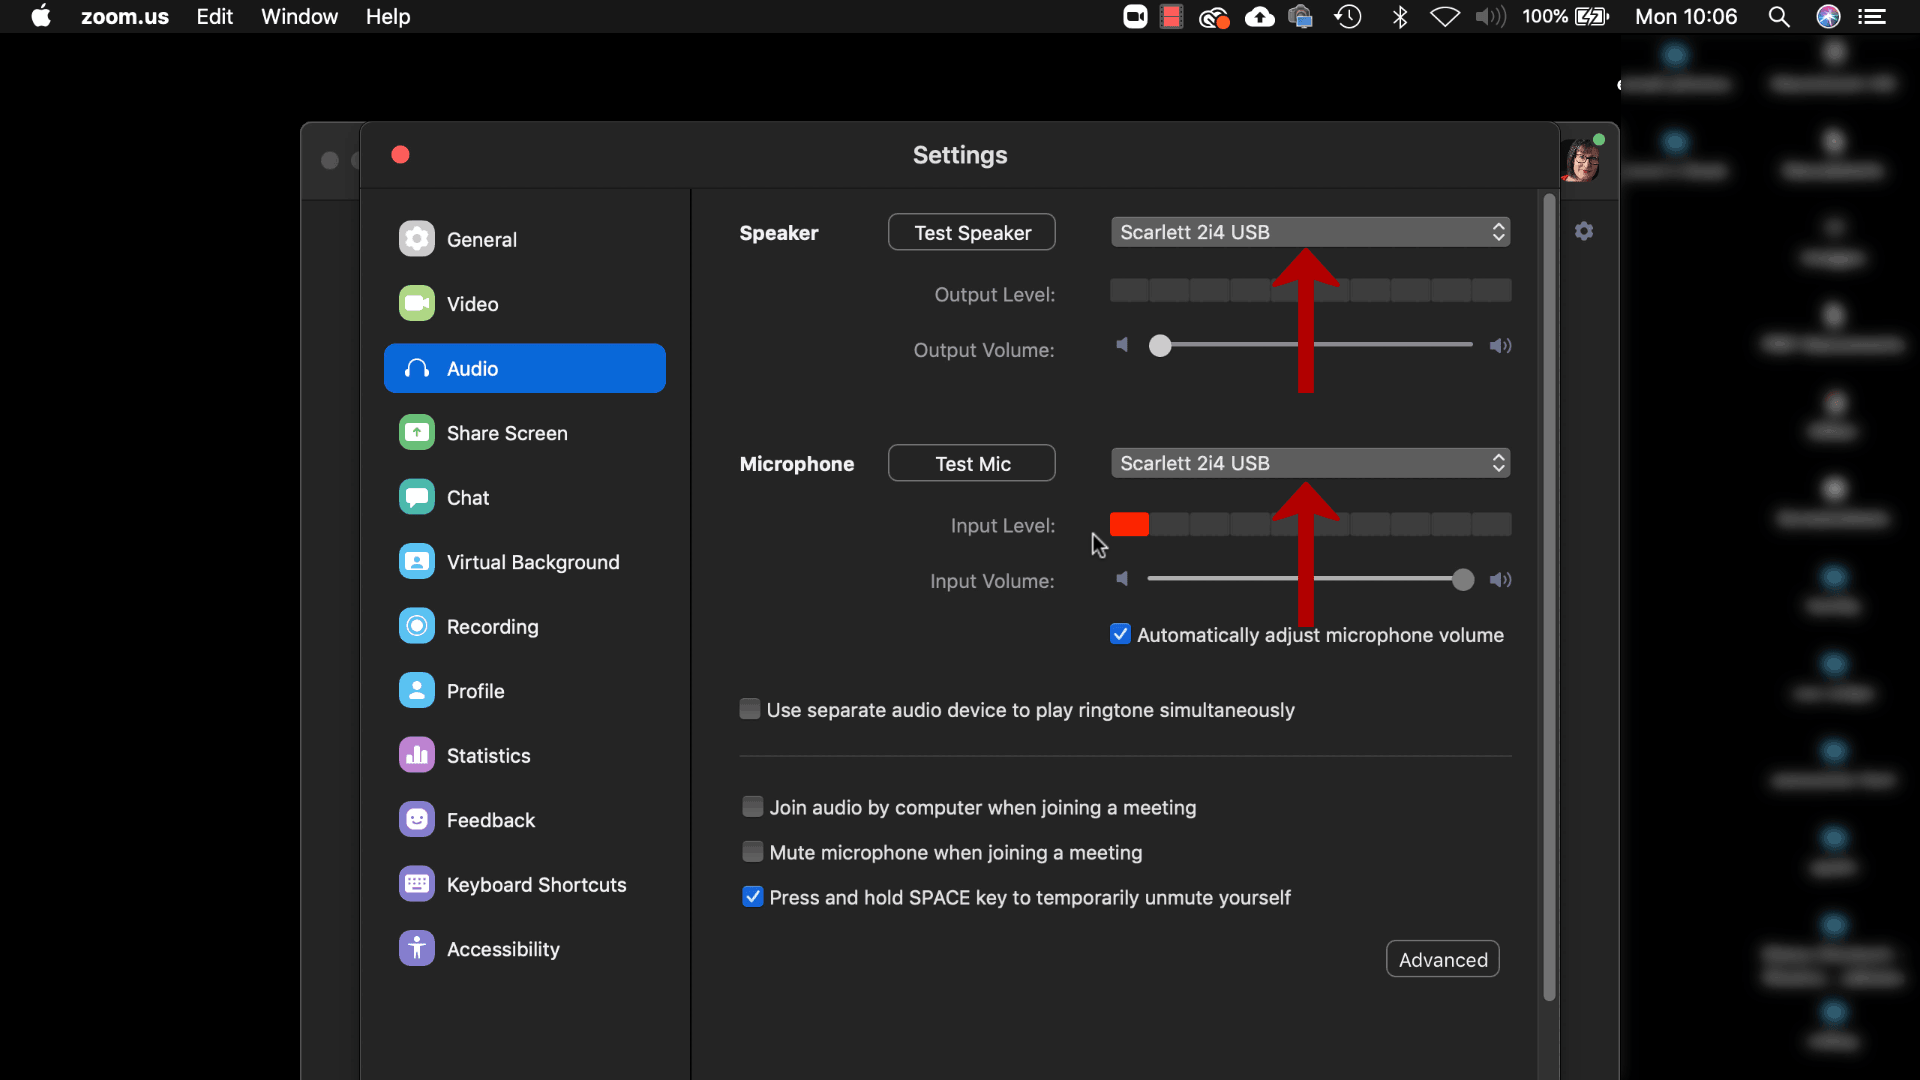 zoom screenshot - access audio device settings